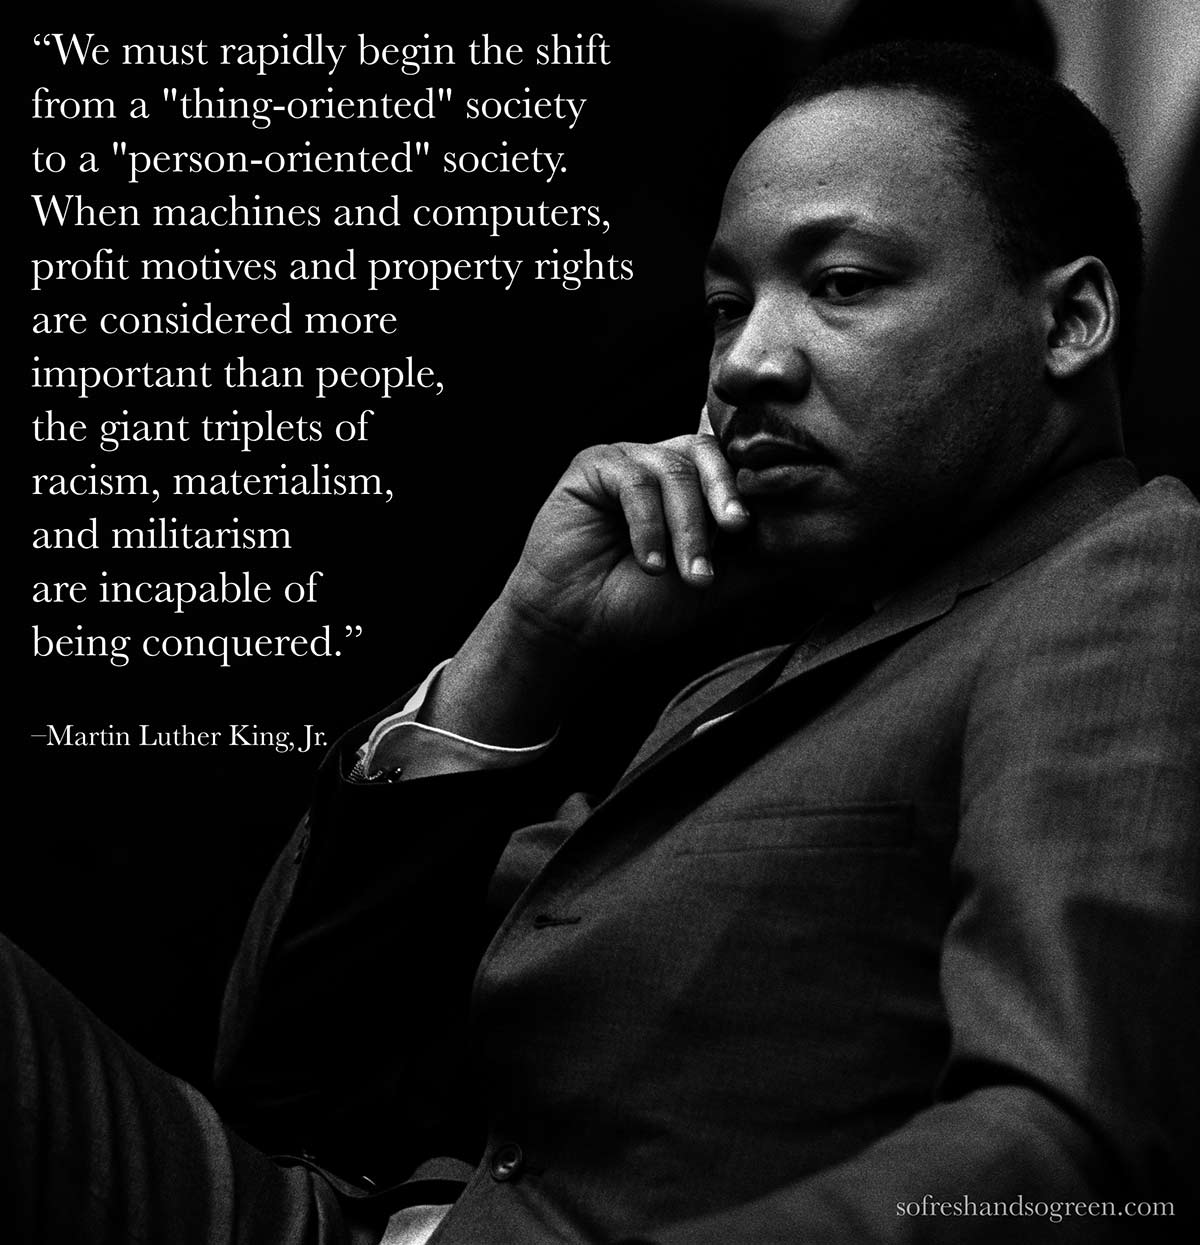 a biography of martin luther king an american activist and clergyman Martin luther king, jr was an american clergyman, activist, and prominent leader in the african-american civil rights movement he is best known for his role in the.